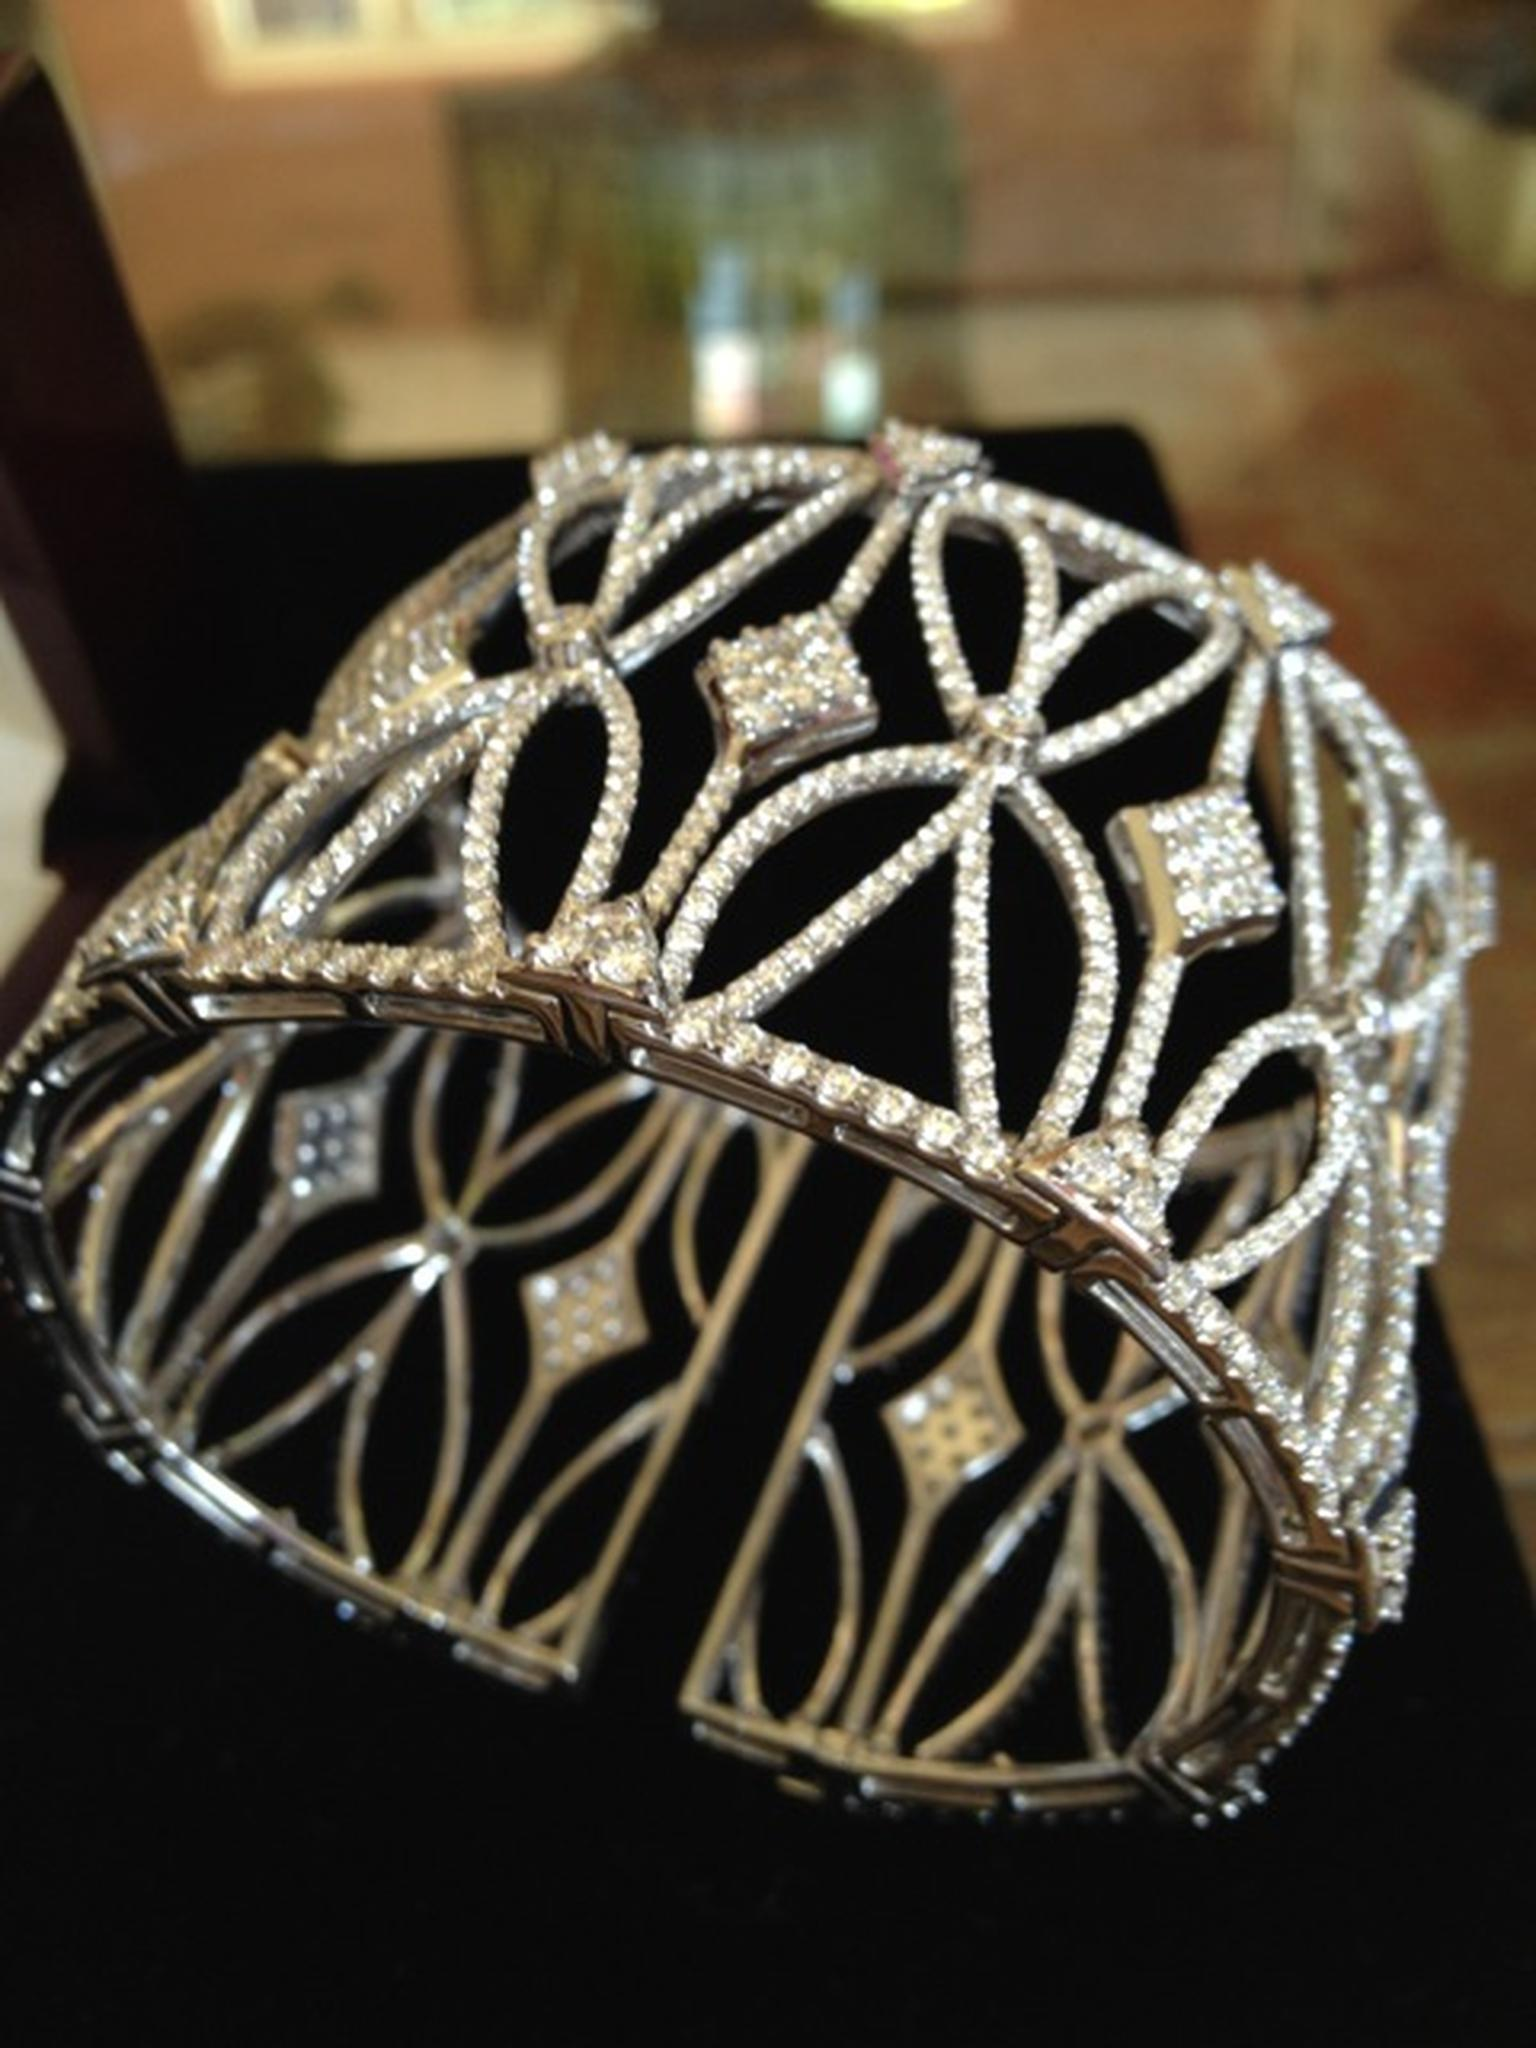 Blue Nile art-deco 24-carat diamond encrusted cuff bracelet